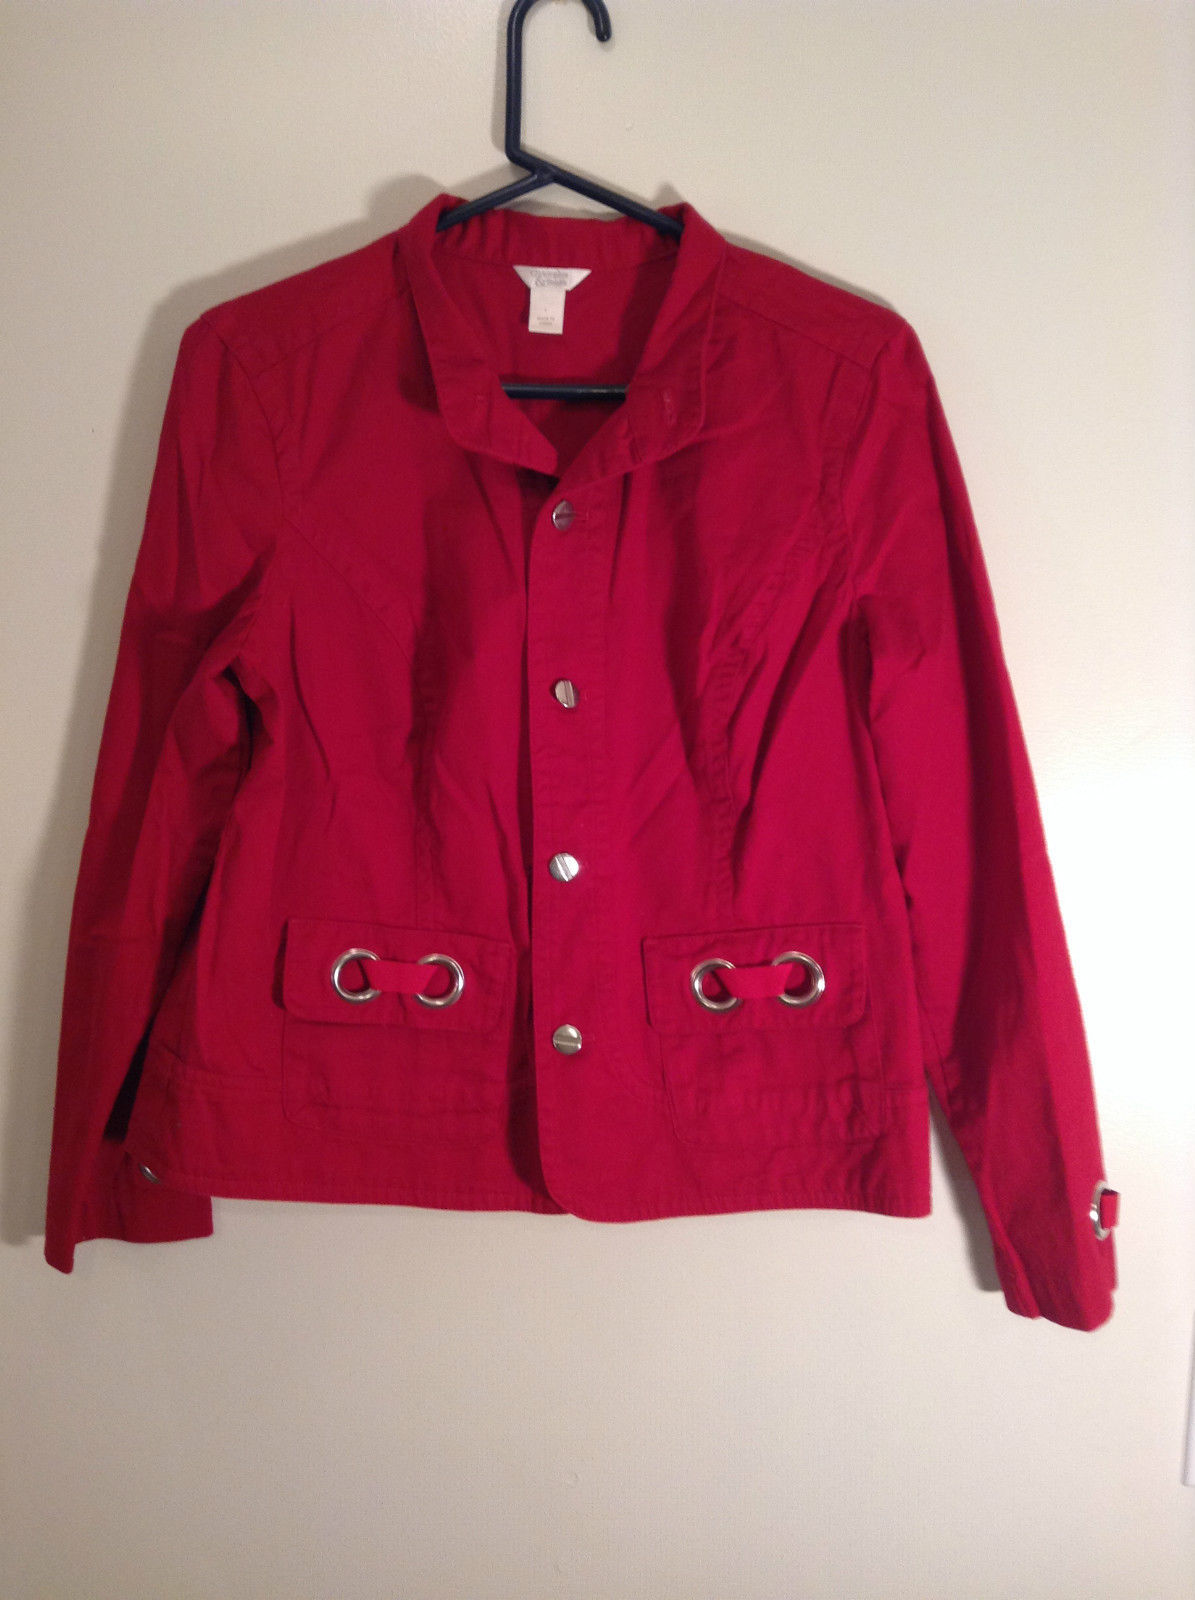 Christopher and Banks Red Long Sleeve Jacket Blazer Front Pockets Size Large